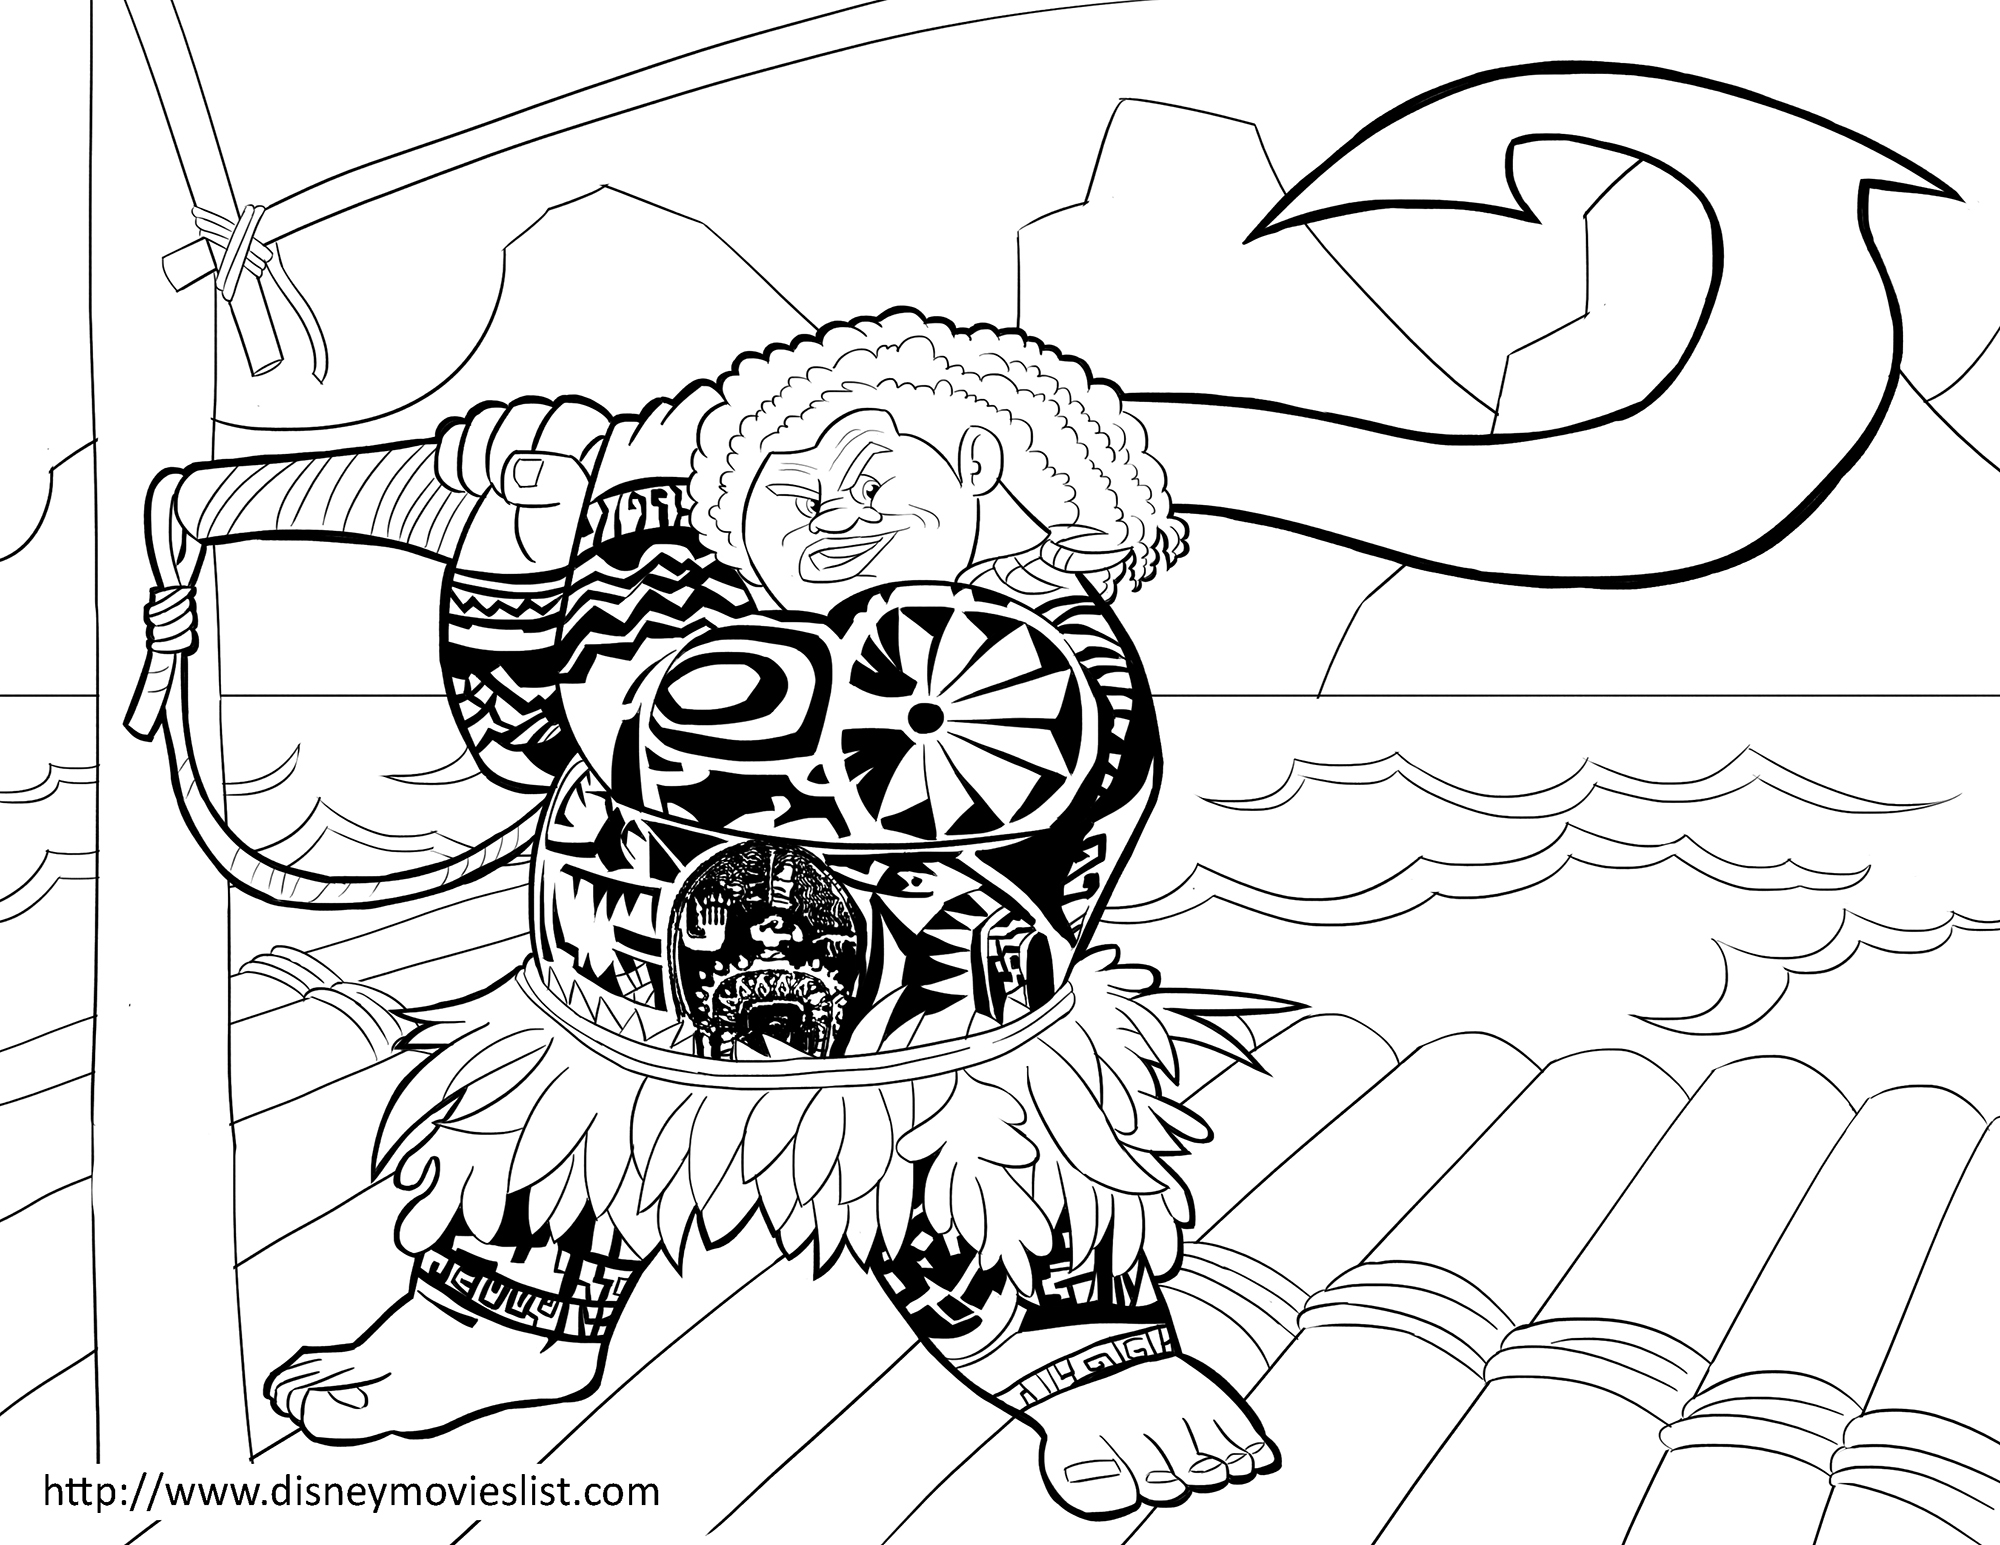 Moana coloring page to download for free : Chief Tui